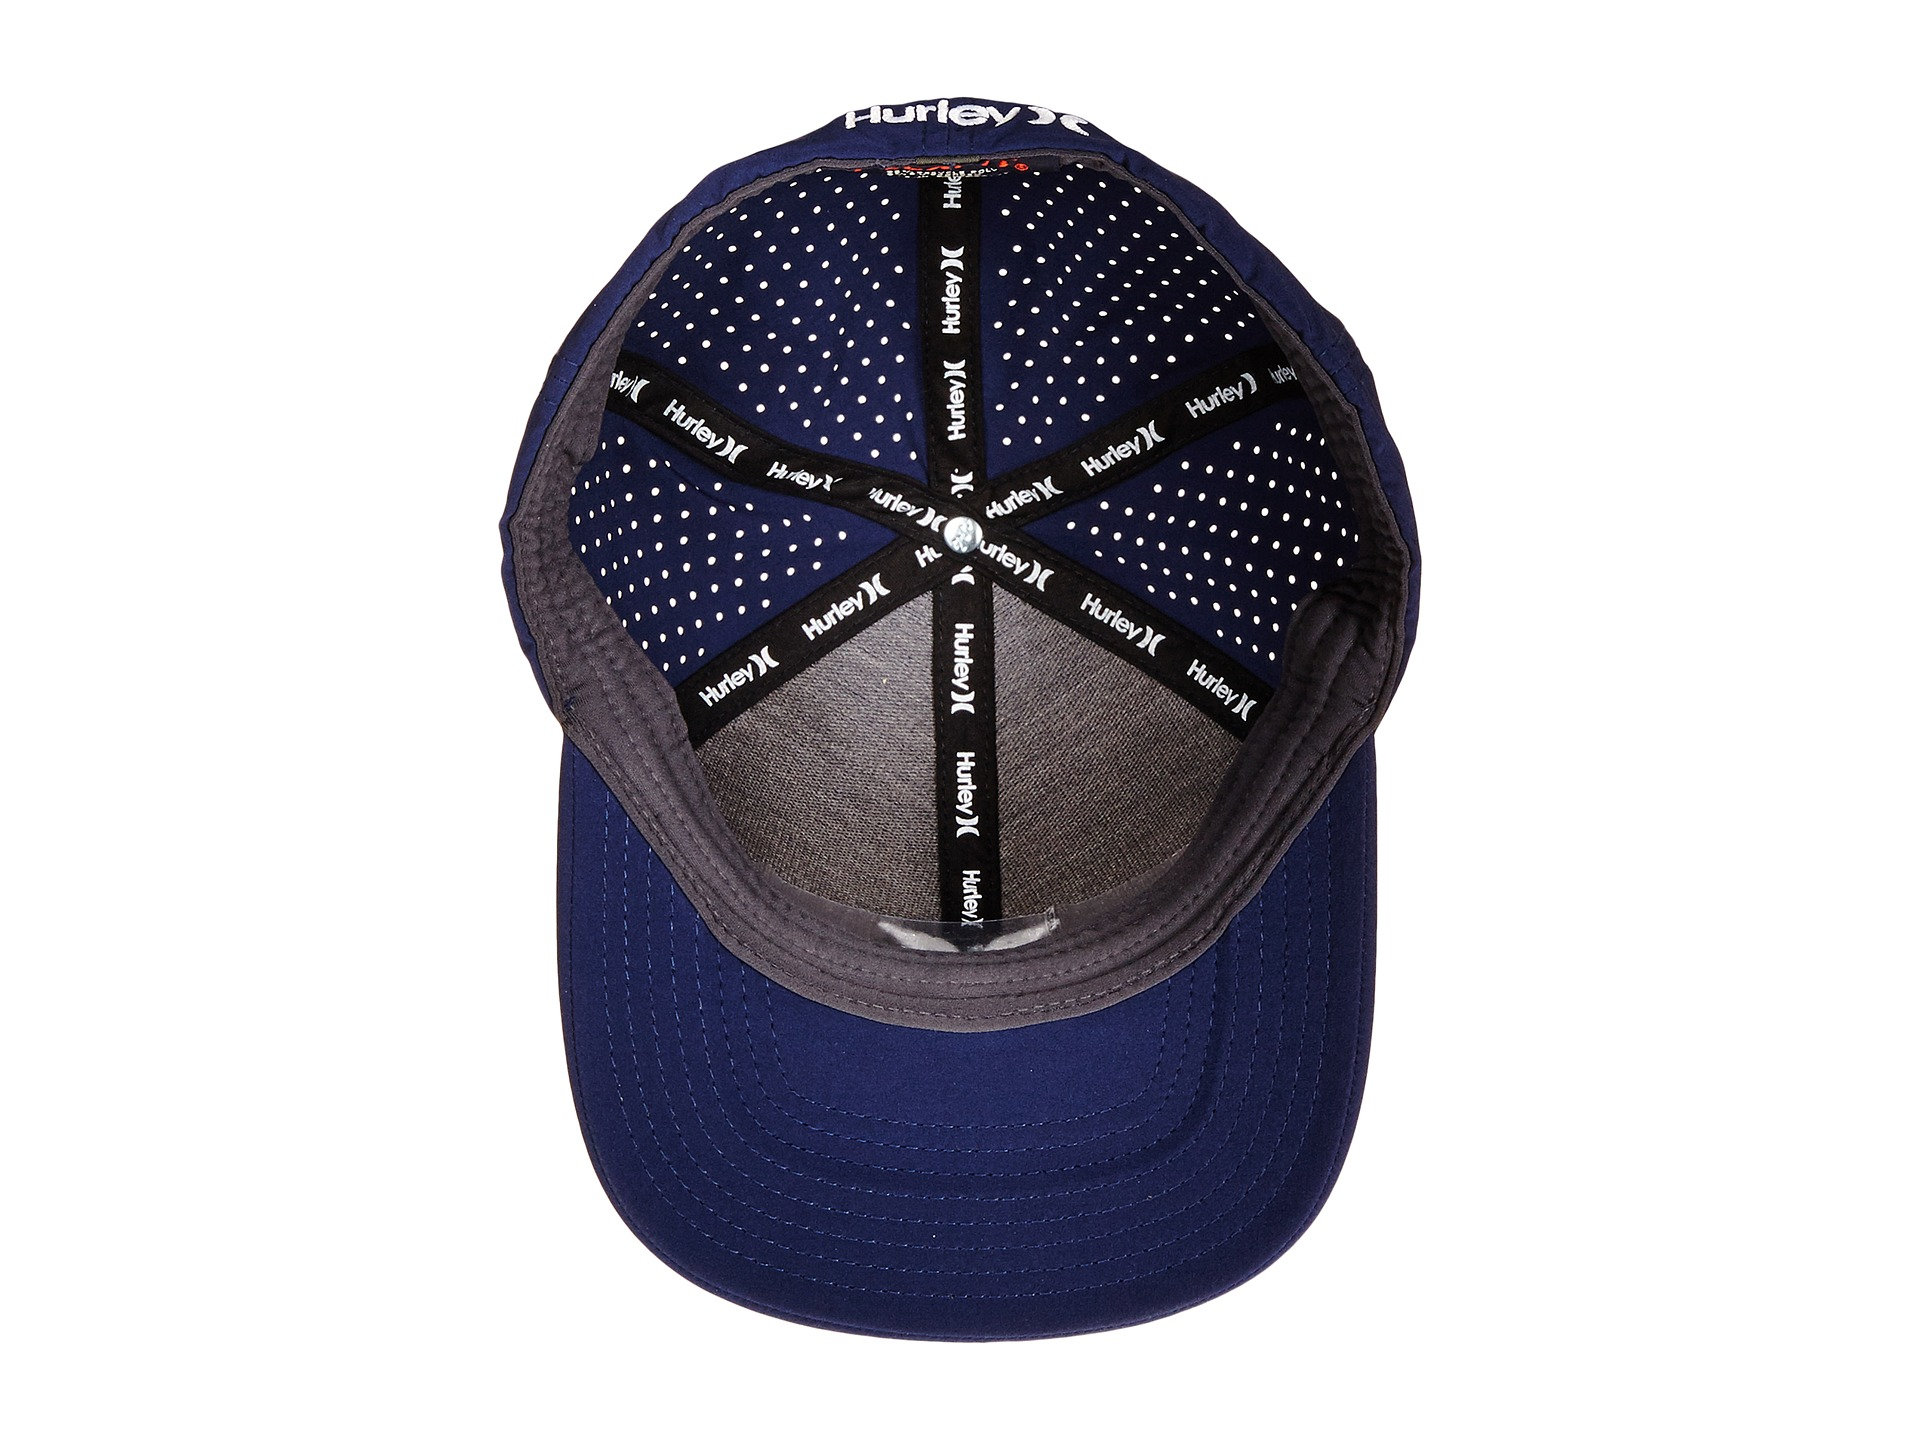 reputable site b1dc3 133c9 ... cheapest lyst hurley phantom vapor 2.0 fitted hat in blue for men 0aa6e  19ed9